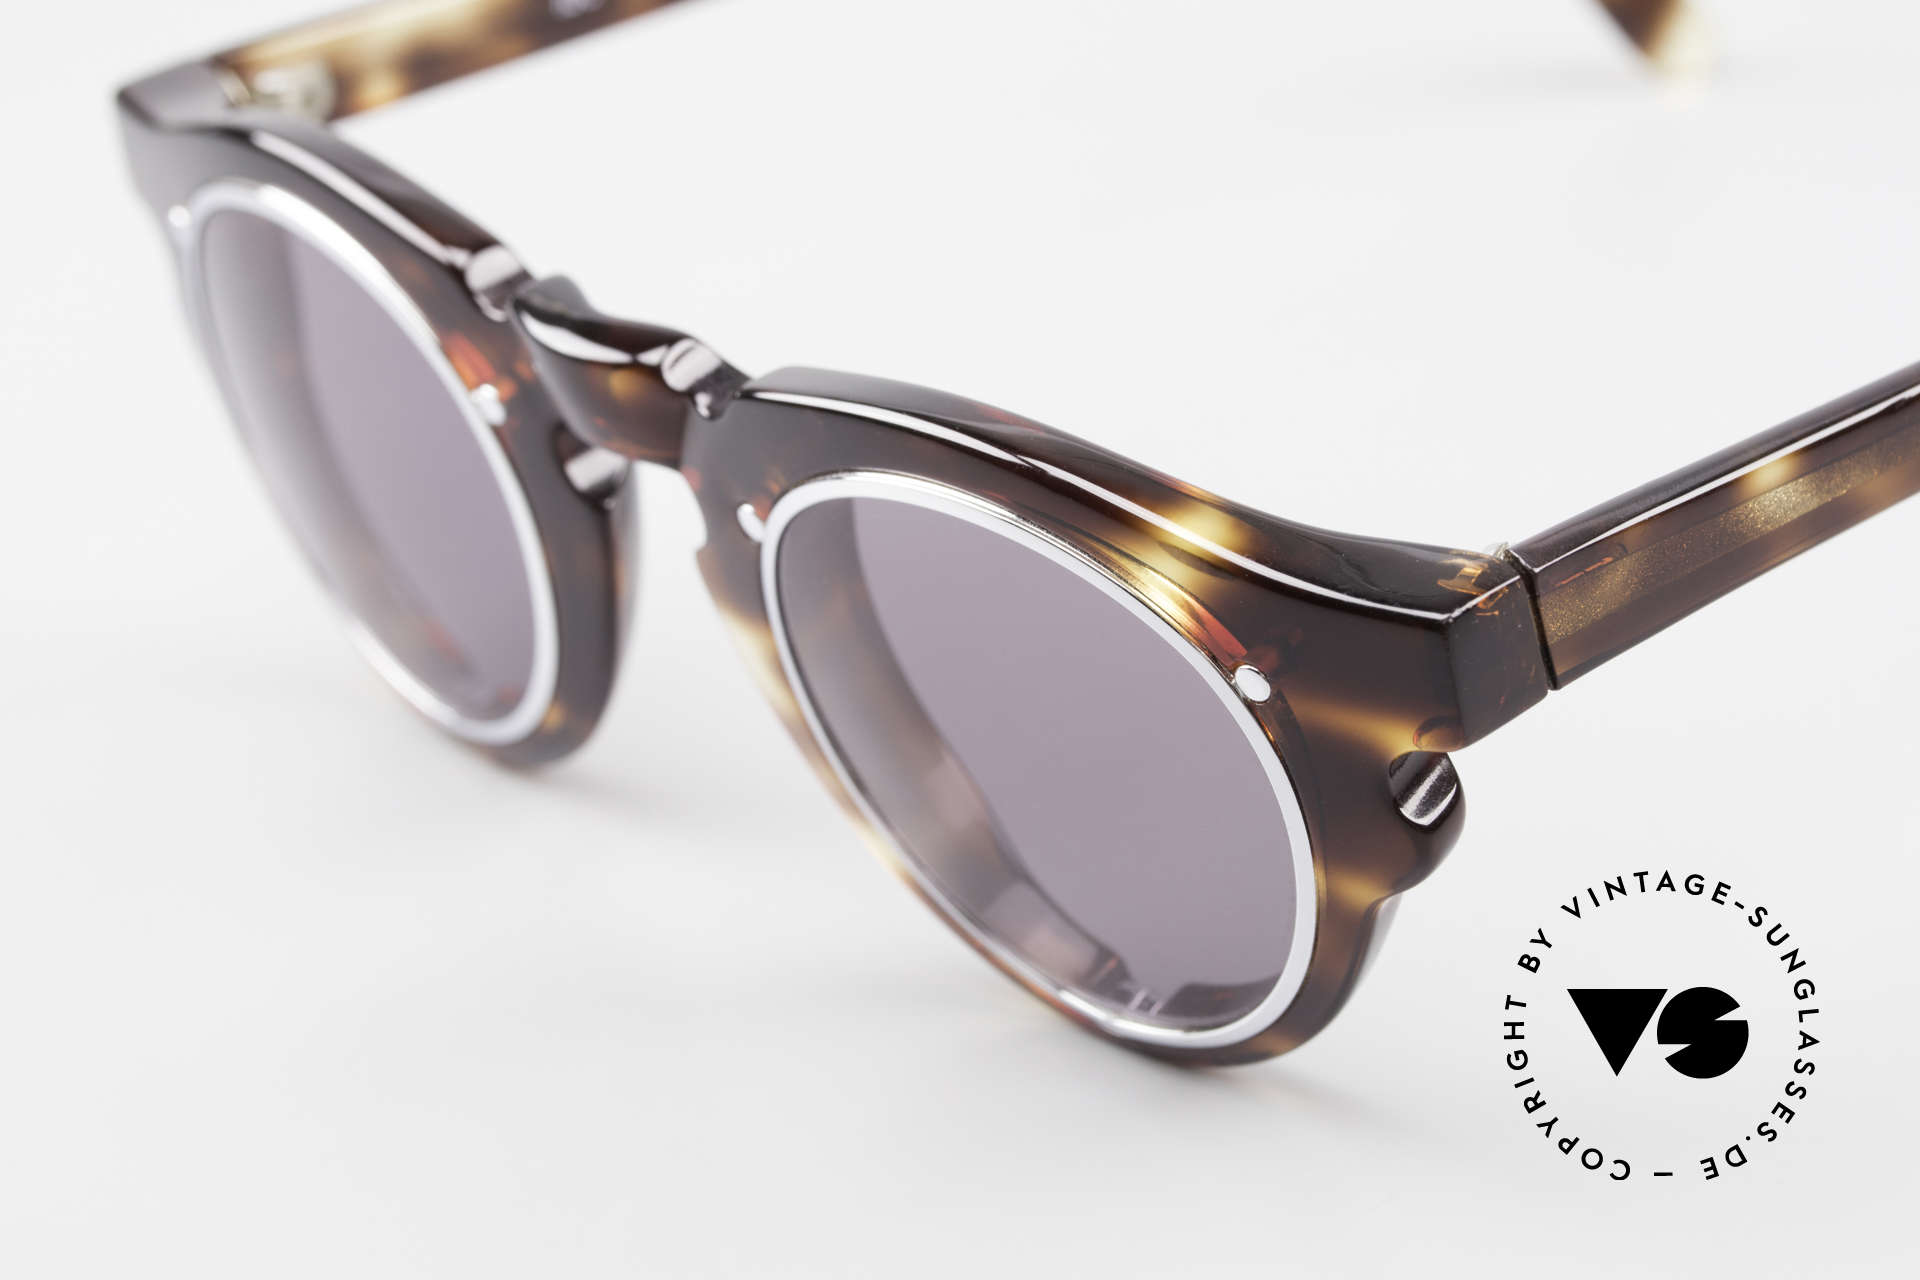 IDC 768 True Vintage Panto Sunglasses, extraordinary design details: naturally vintage IDC, Made for Men and Women